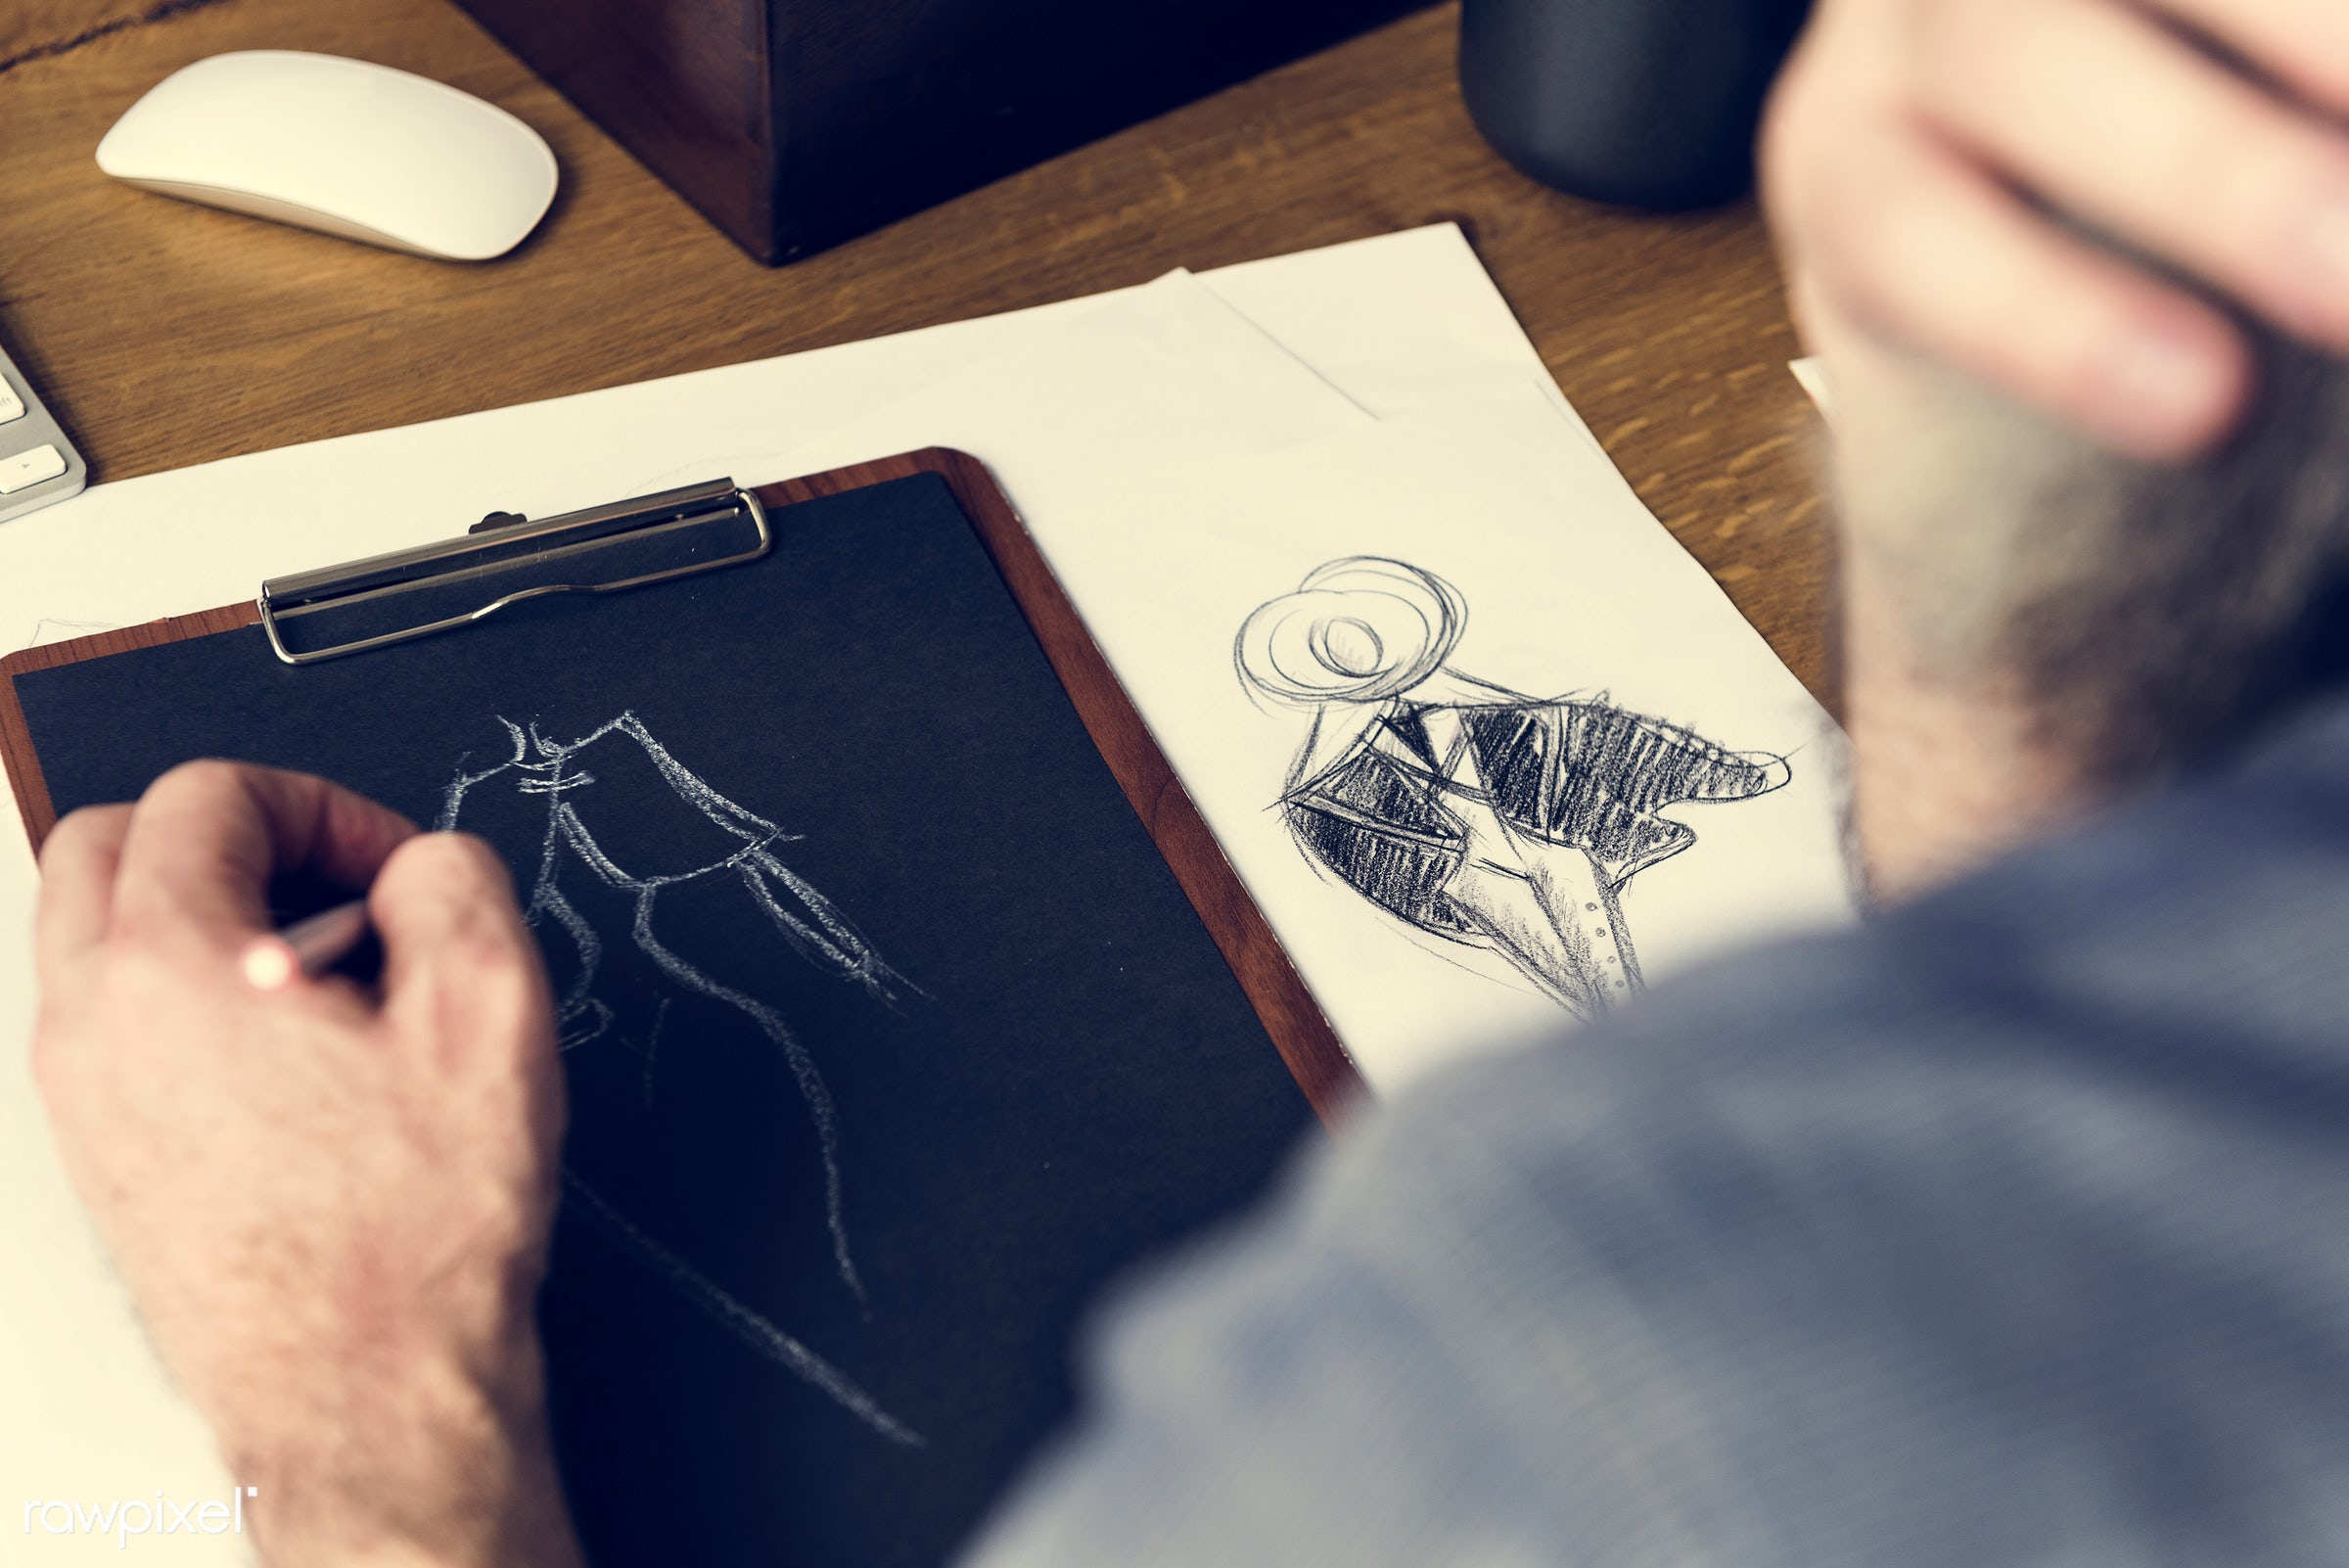 fashion, arts, paper, trendy, imagination, creativity, drawing, hand, inspiration, style, fashion design, sketching, tailor...